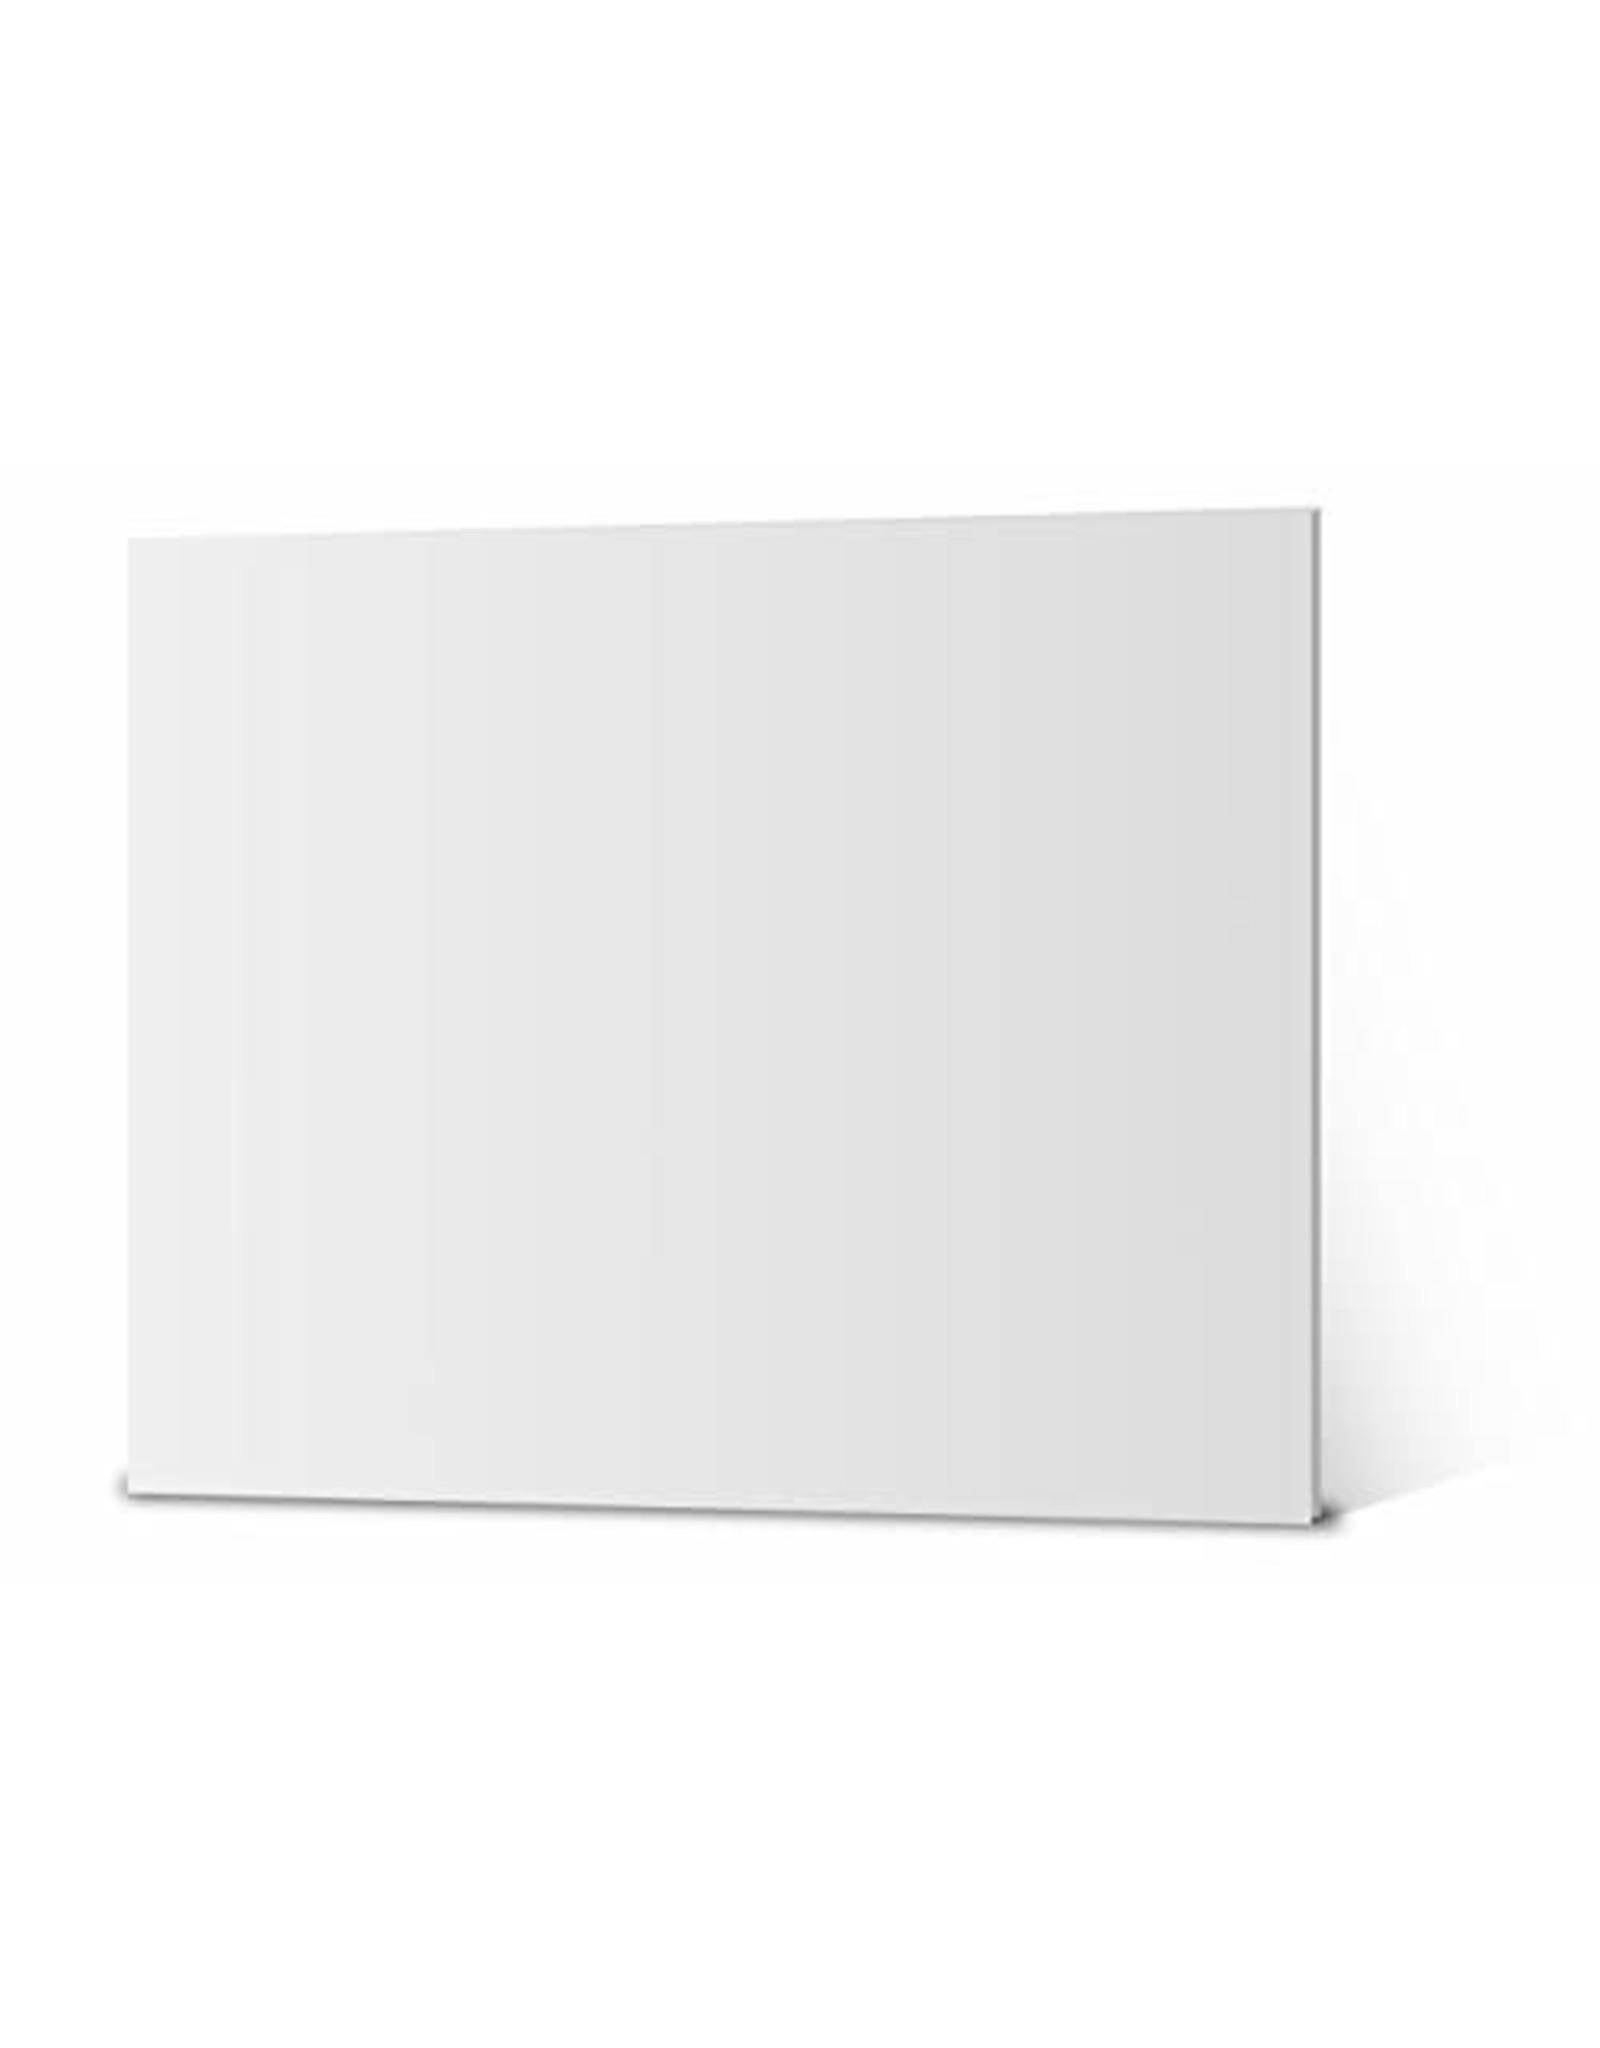 Newell Brands FOAM BOARD-20X30'' 3/16'' THICK WHITE